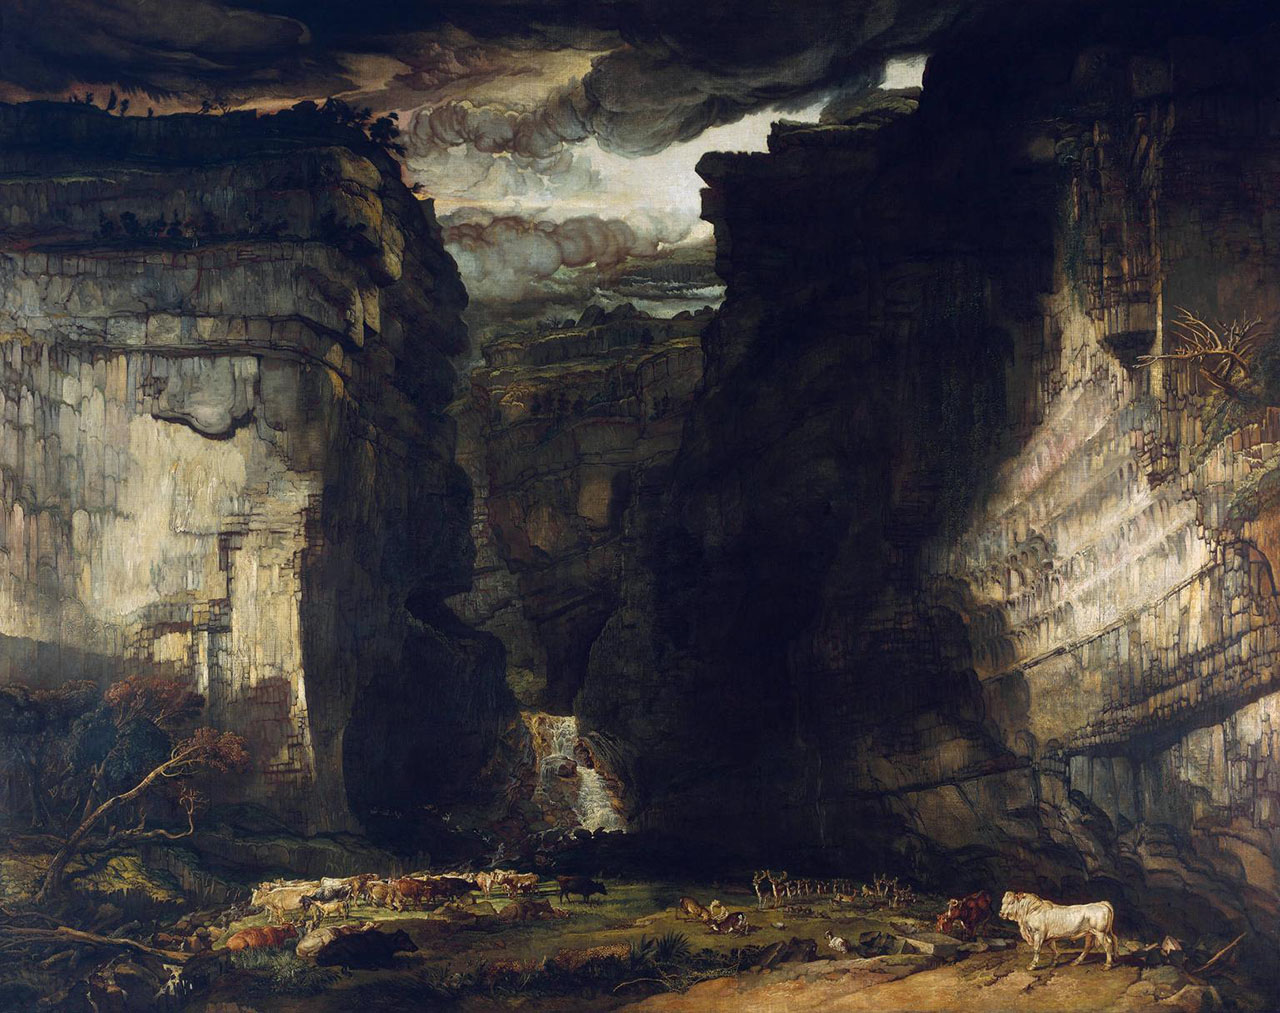 Gordale Scar (A View of Gordale, in the Manor of East Malham in Craven, Yorkshire, the Property of Lord Ribblesdale) ?1812-14, exhibited 1815 by James Ward 1769-1859